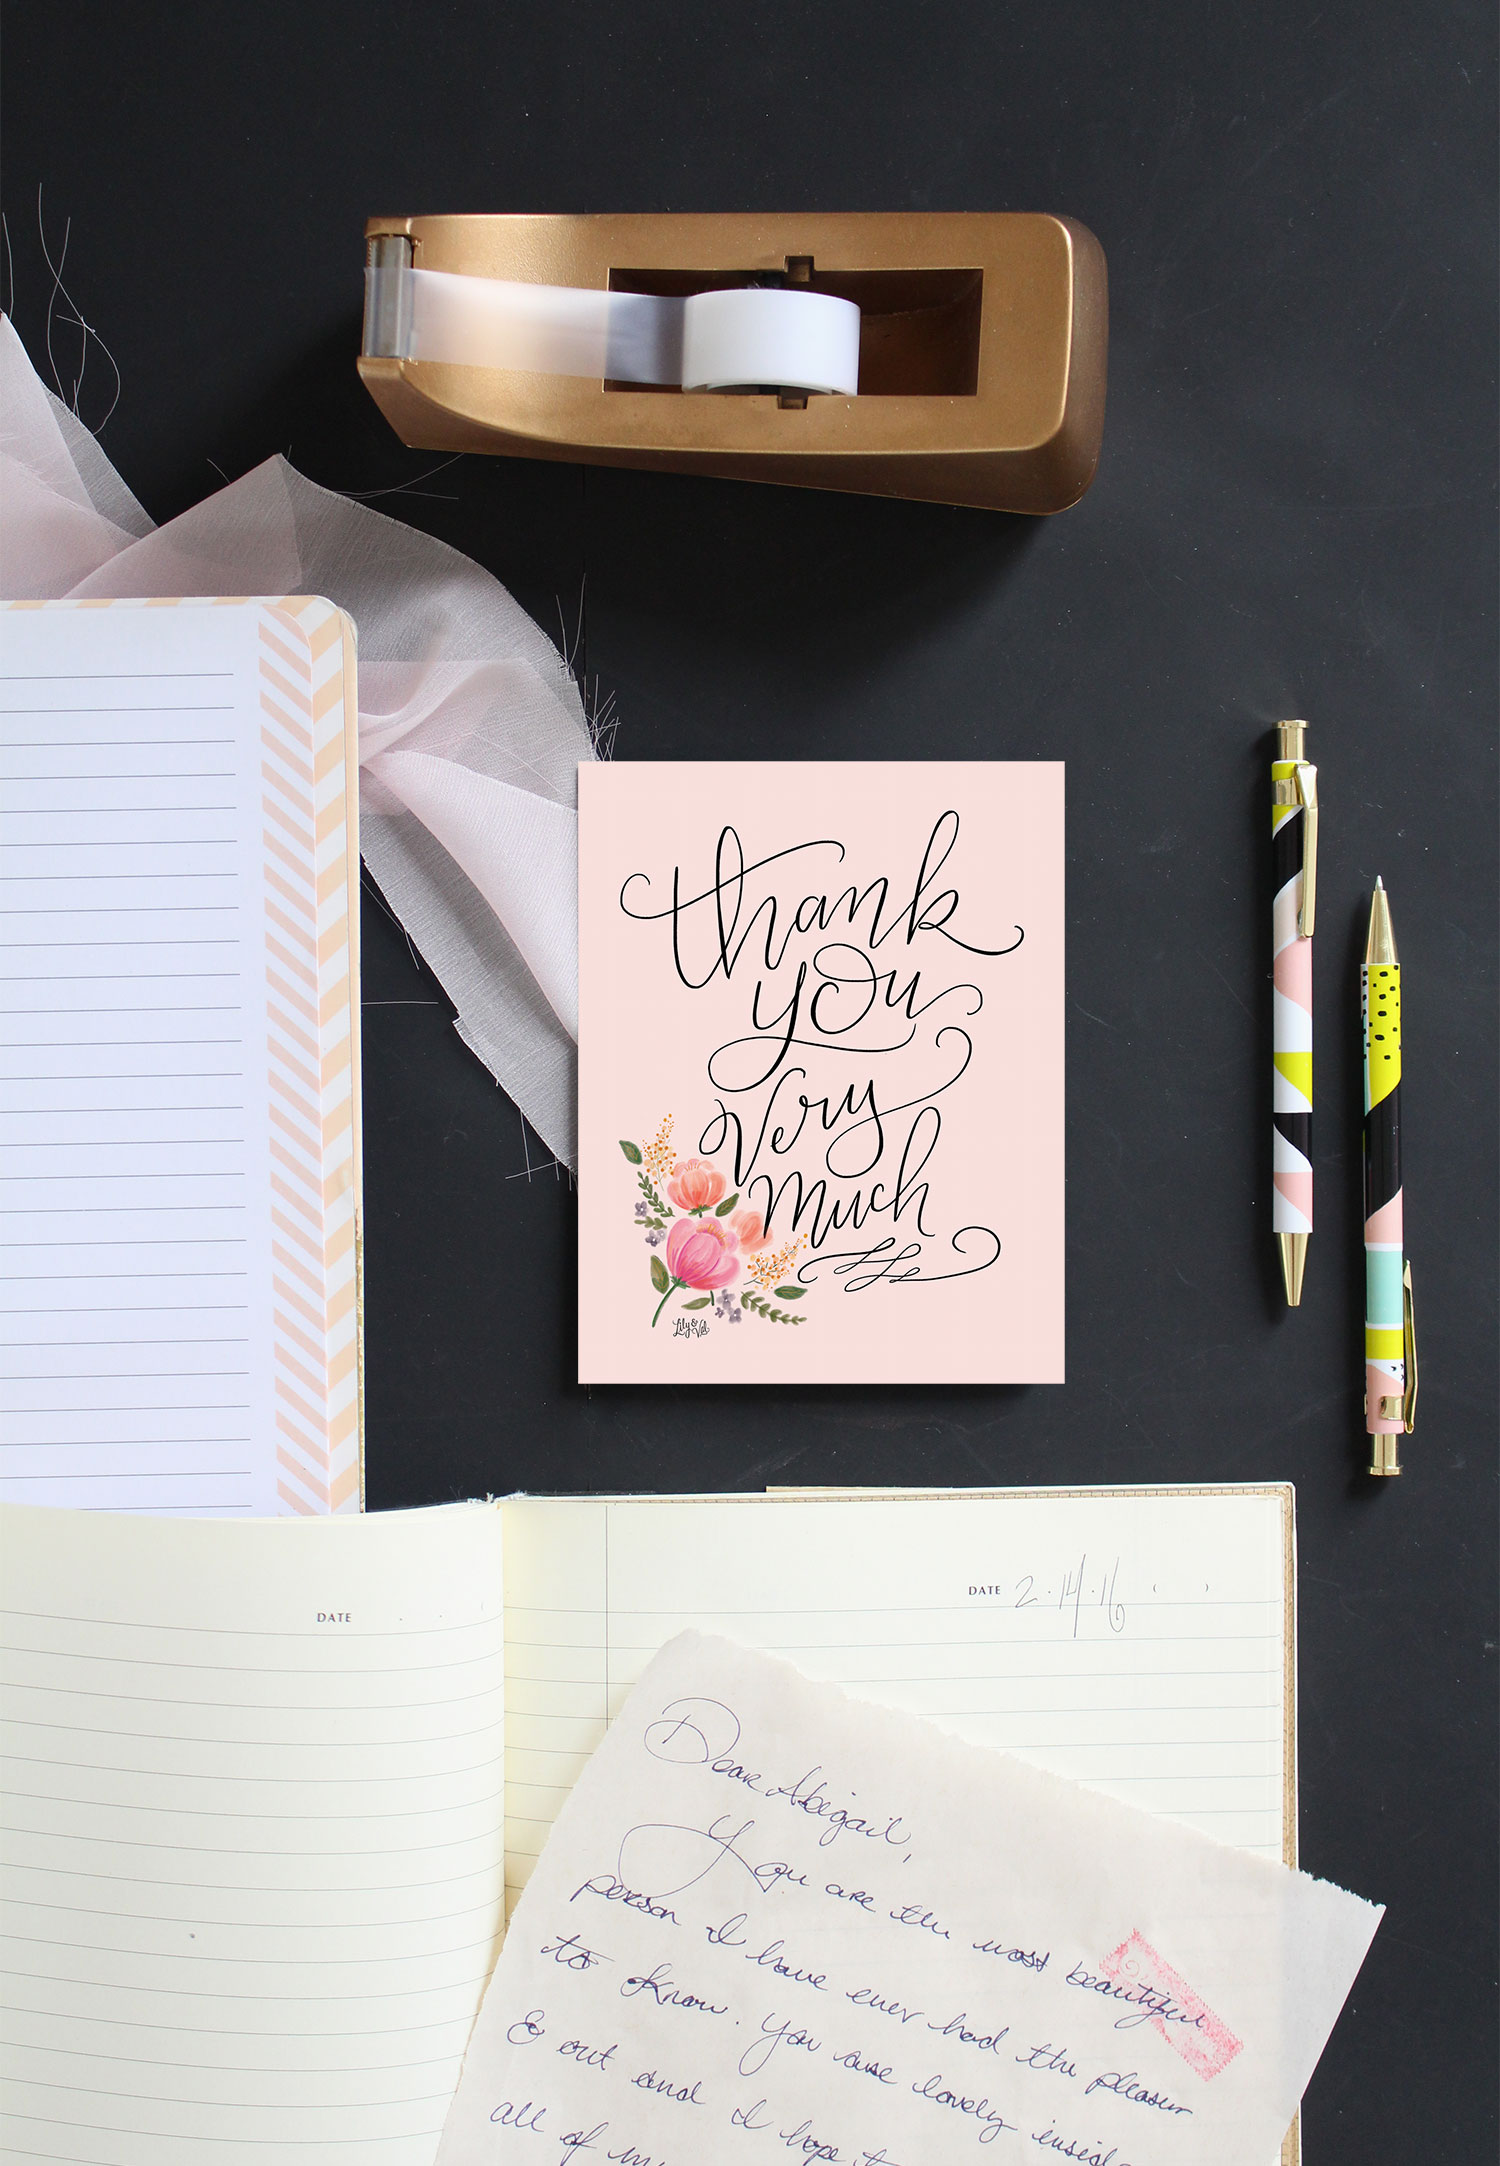 Send thanks and sweet wishes with this pretty in pink thank you card, hand-drawn by Valerie McKeehan